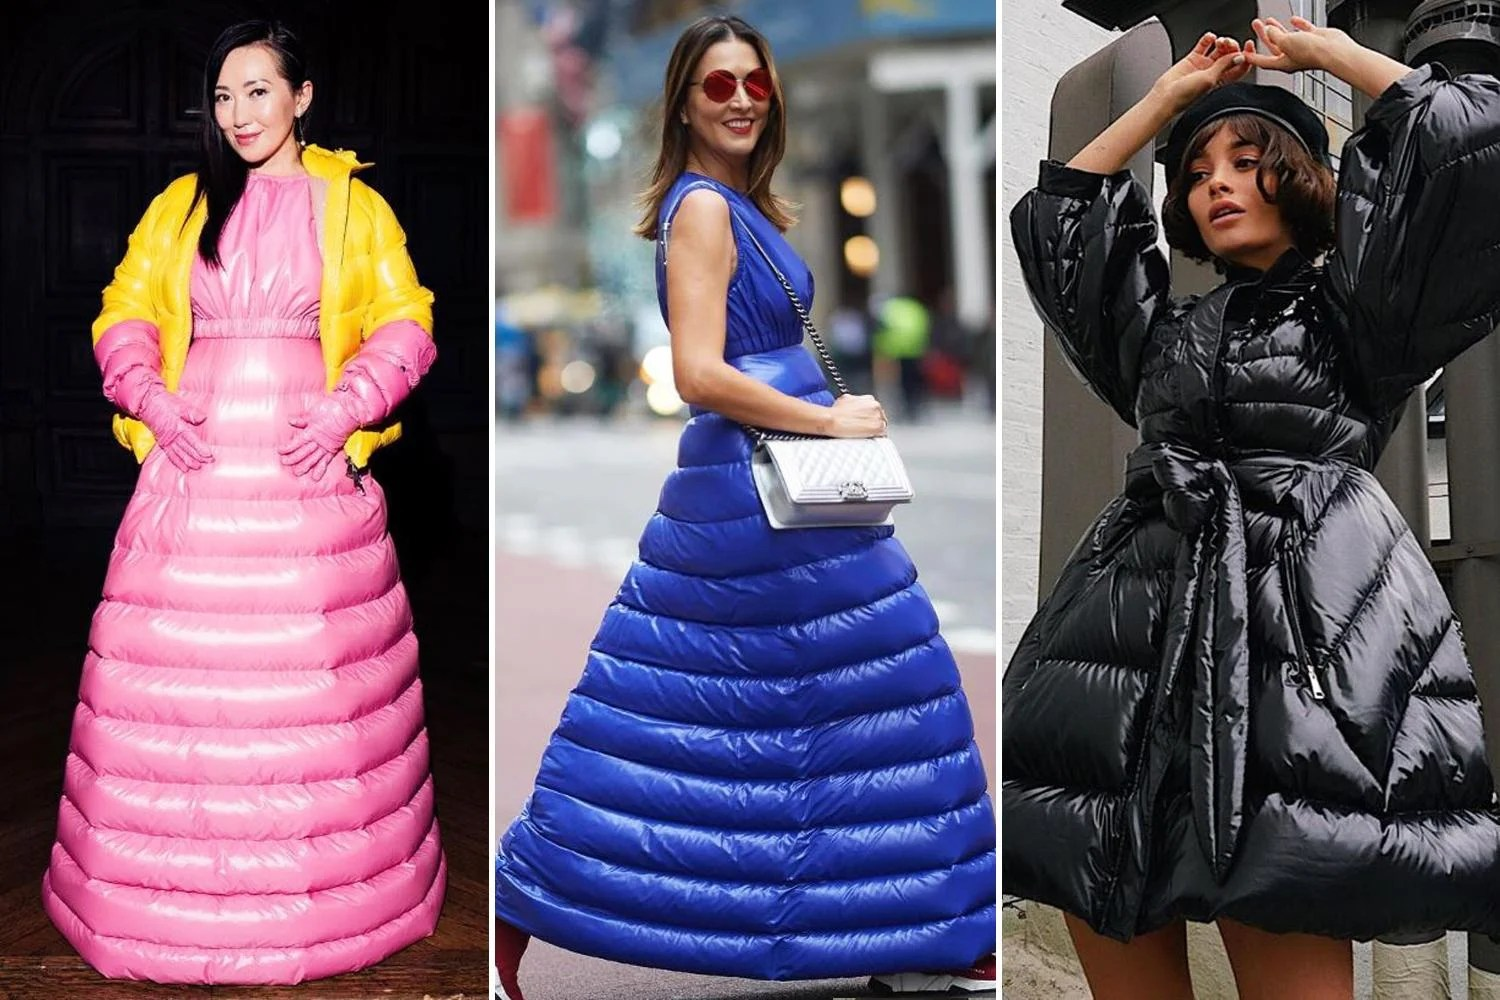 Puffer Dresses Are The Unexpected Winter Trend Of 2018